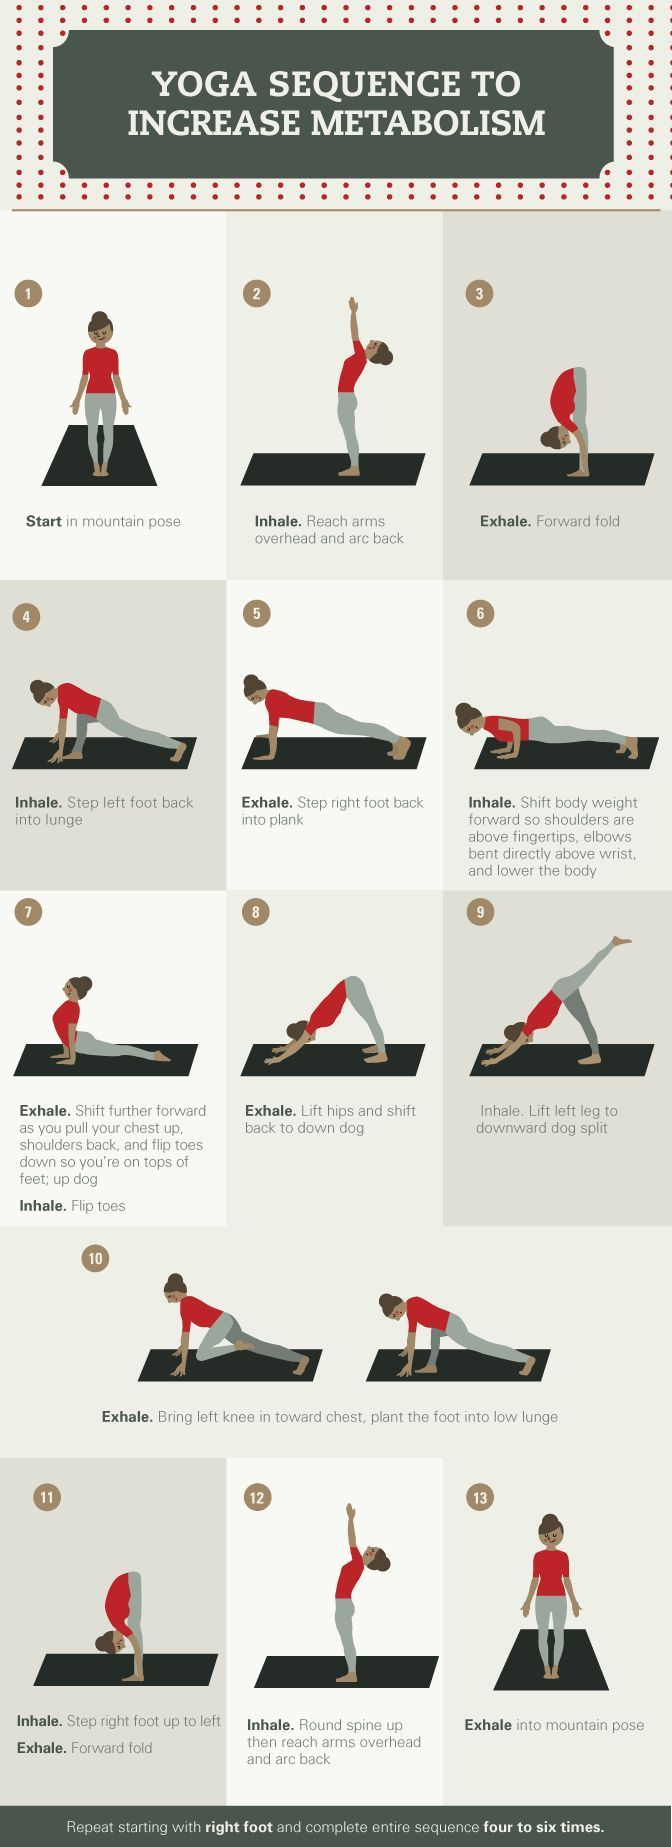 A typical sun salutation is a great way for the body to get moving, and increase sweat, breathing, and metabolism.